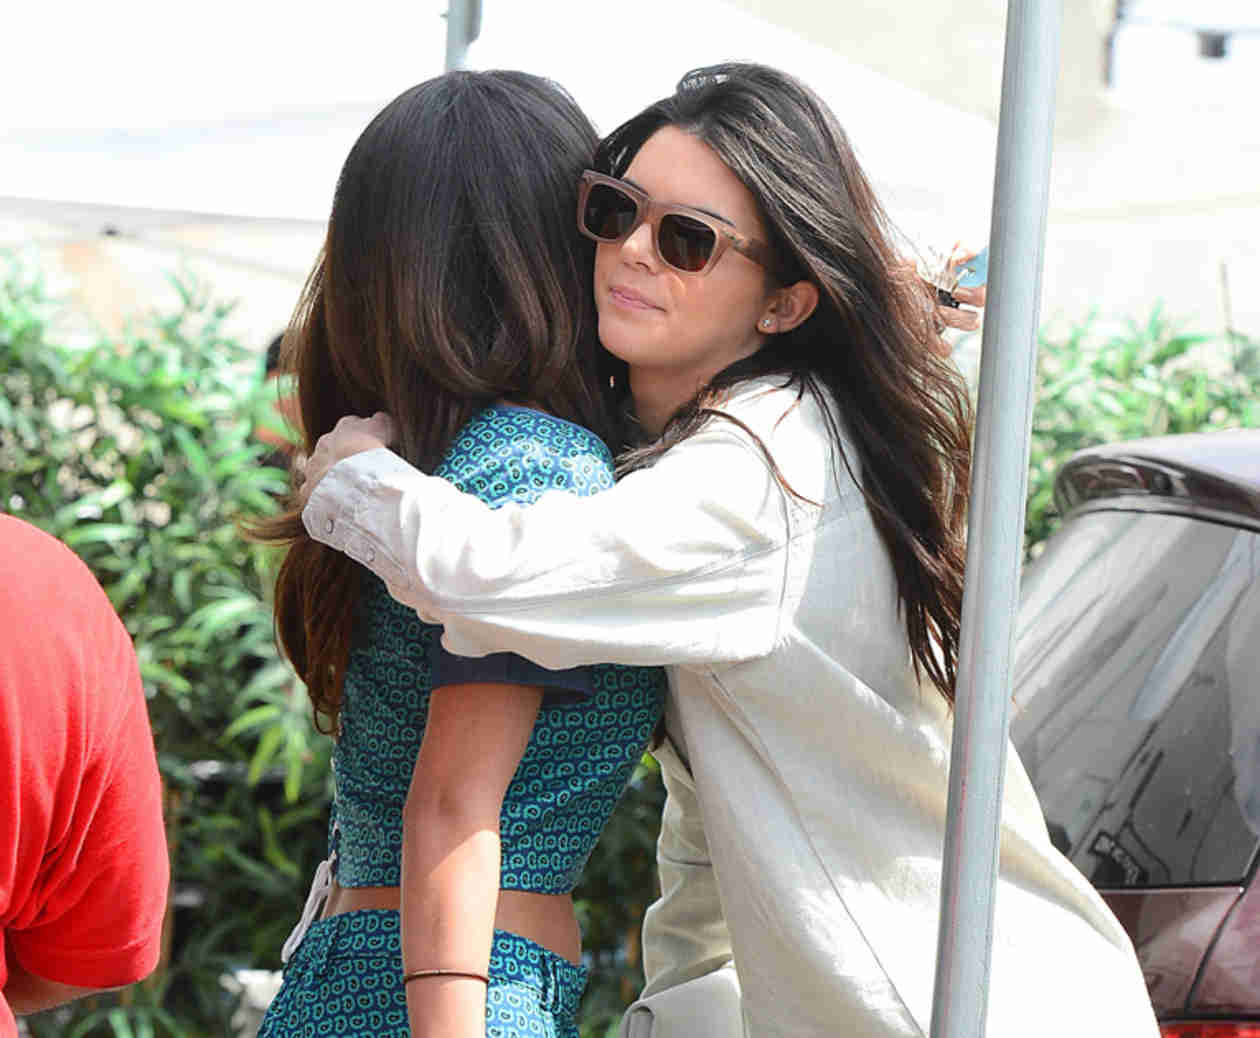 Kendall Jenner Has Lunch With Selena Gomez — Who Knew They Were Friends?!